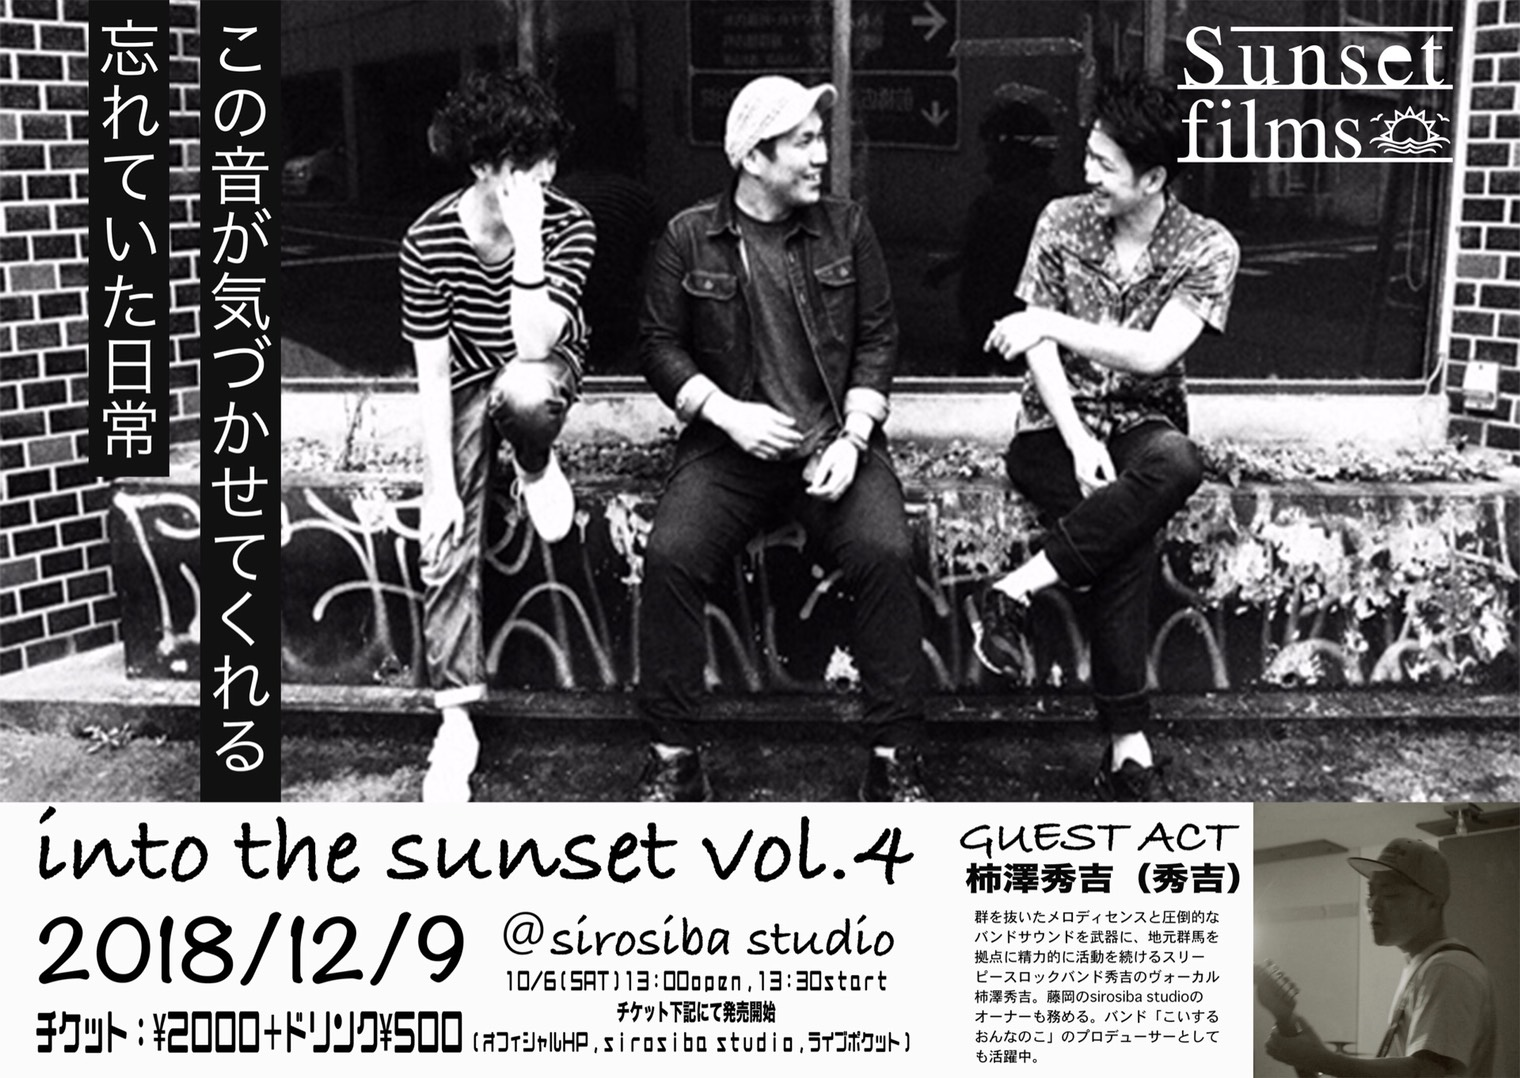 Sunset films Presents「Into the Sunset vol.4」